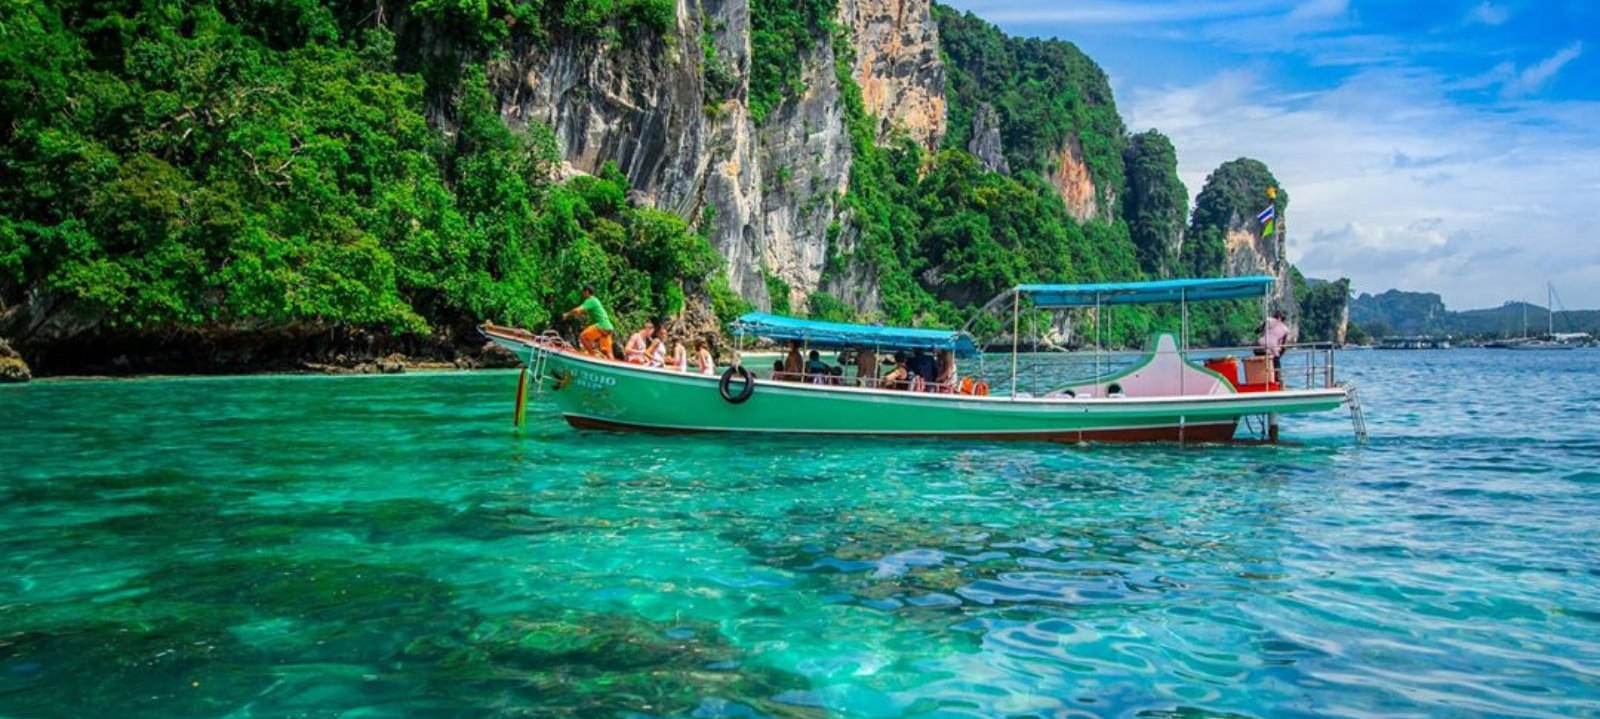 Full-Day 7 Islands Tour & Sunset By Longtail